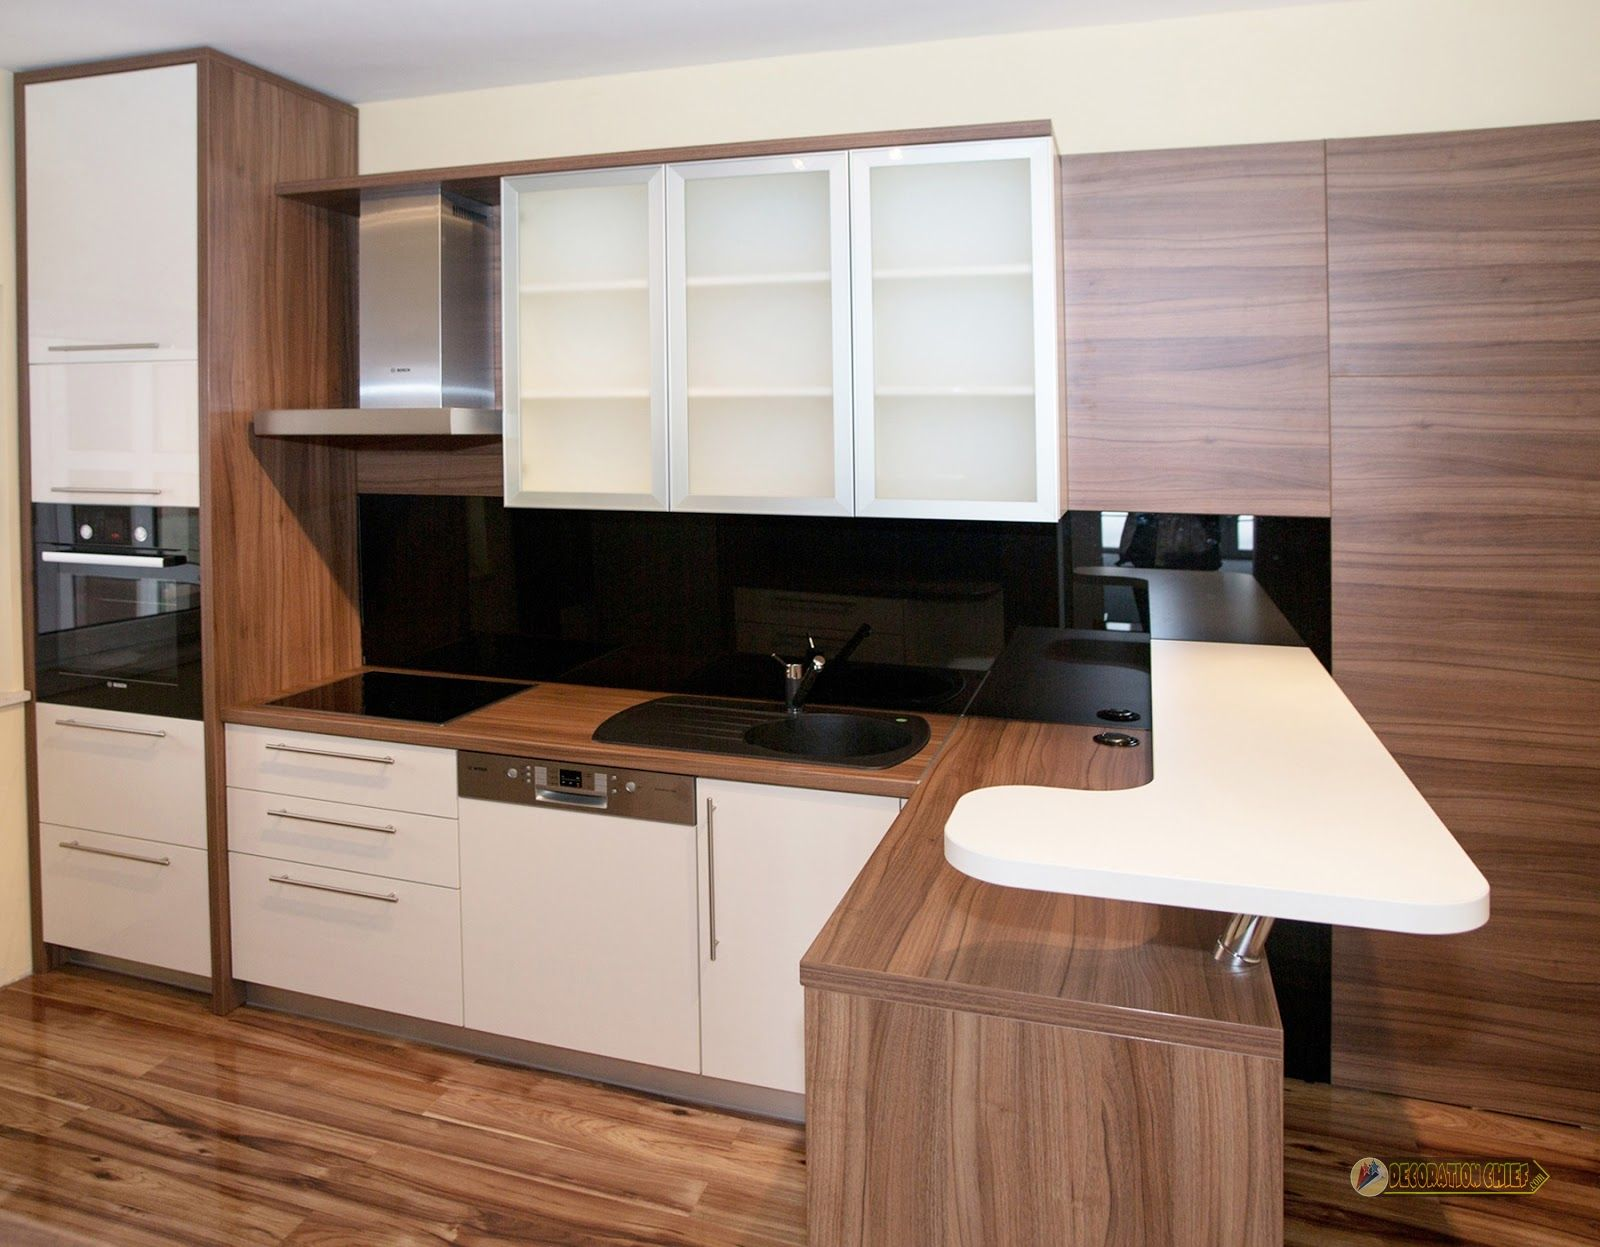 Examples Of Small Kitchen Design Ideas 2017